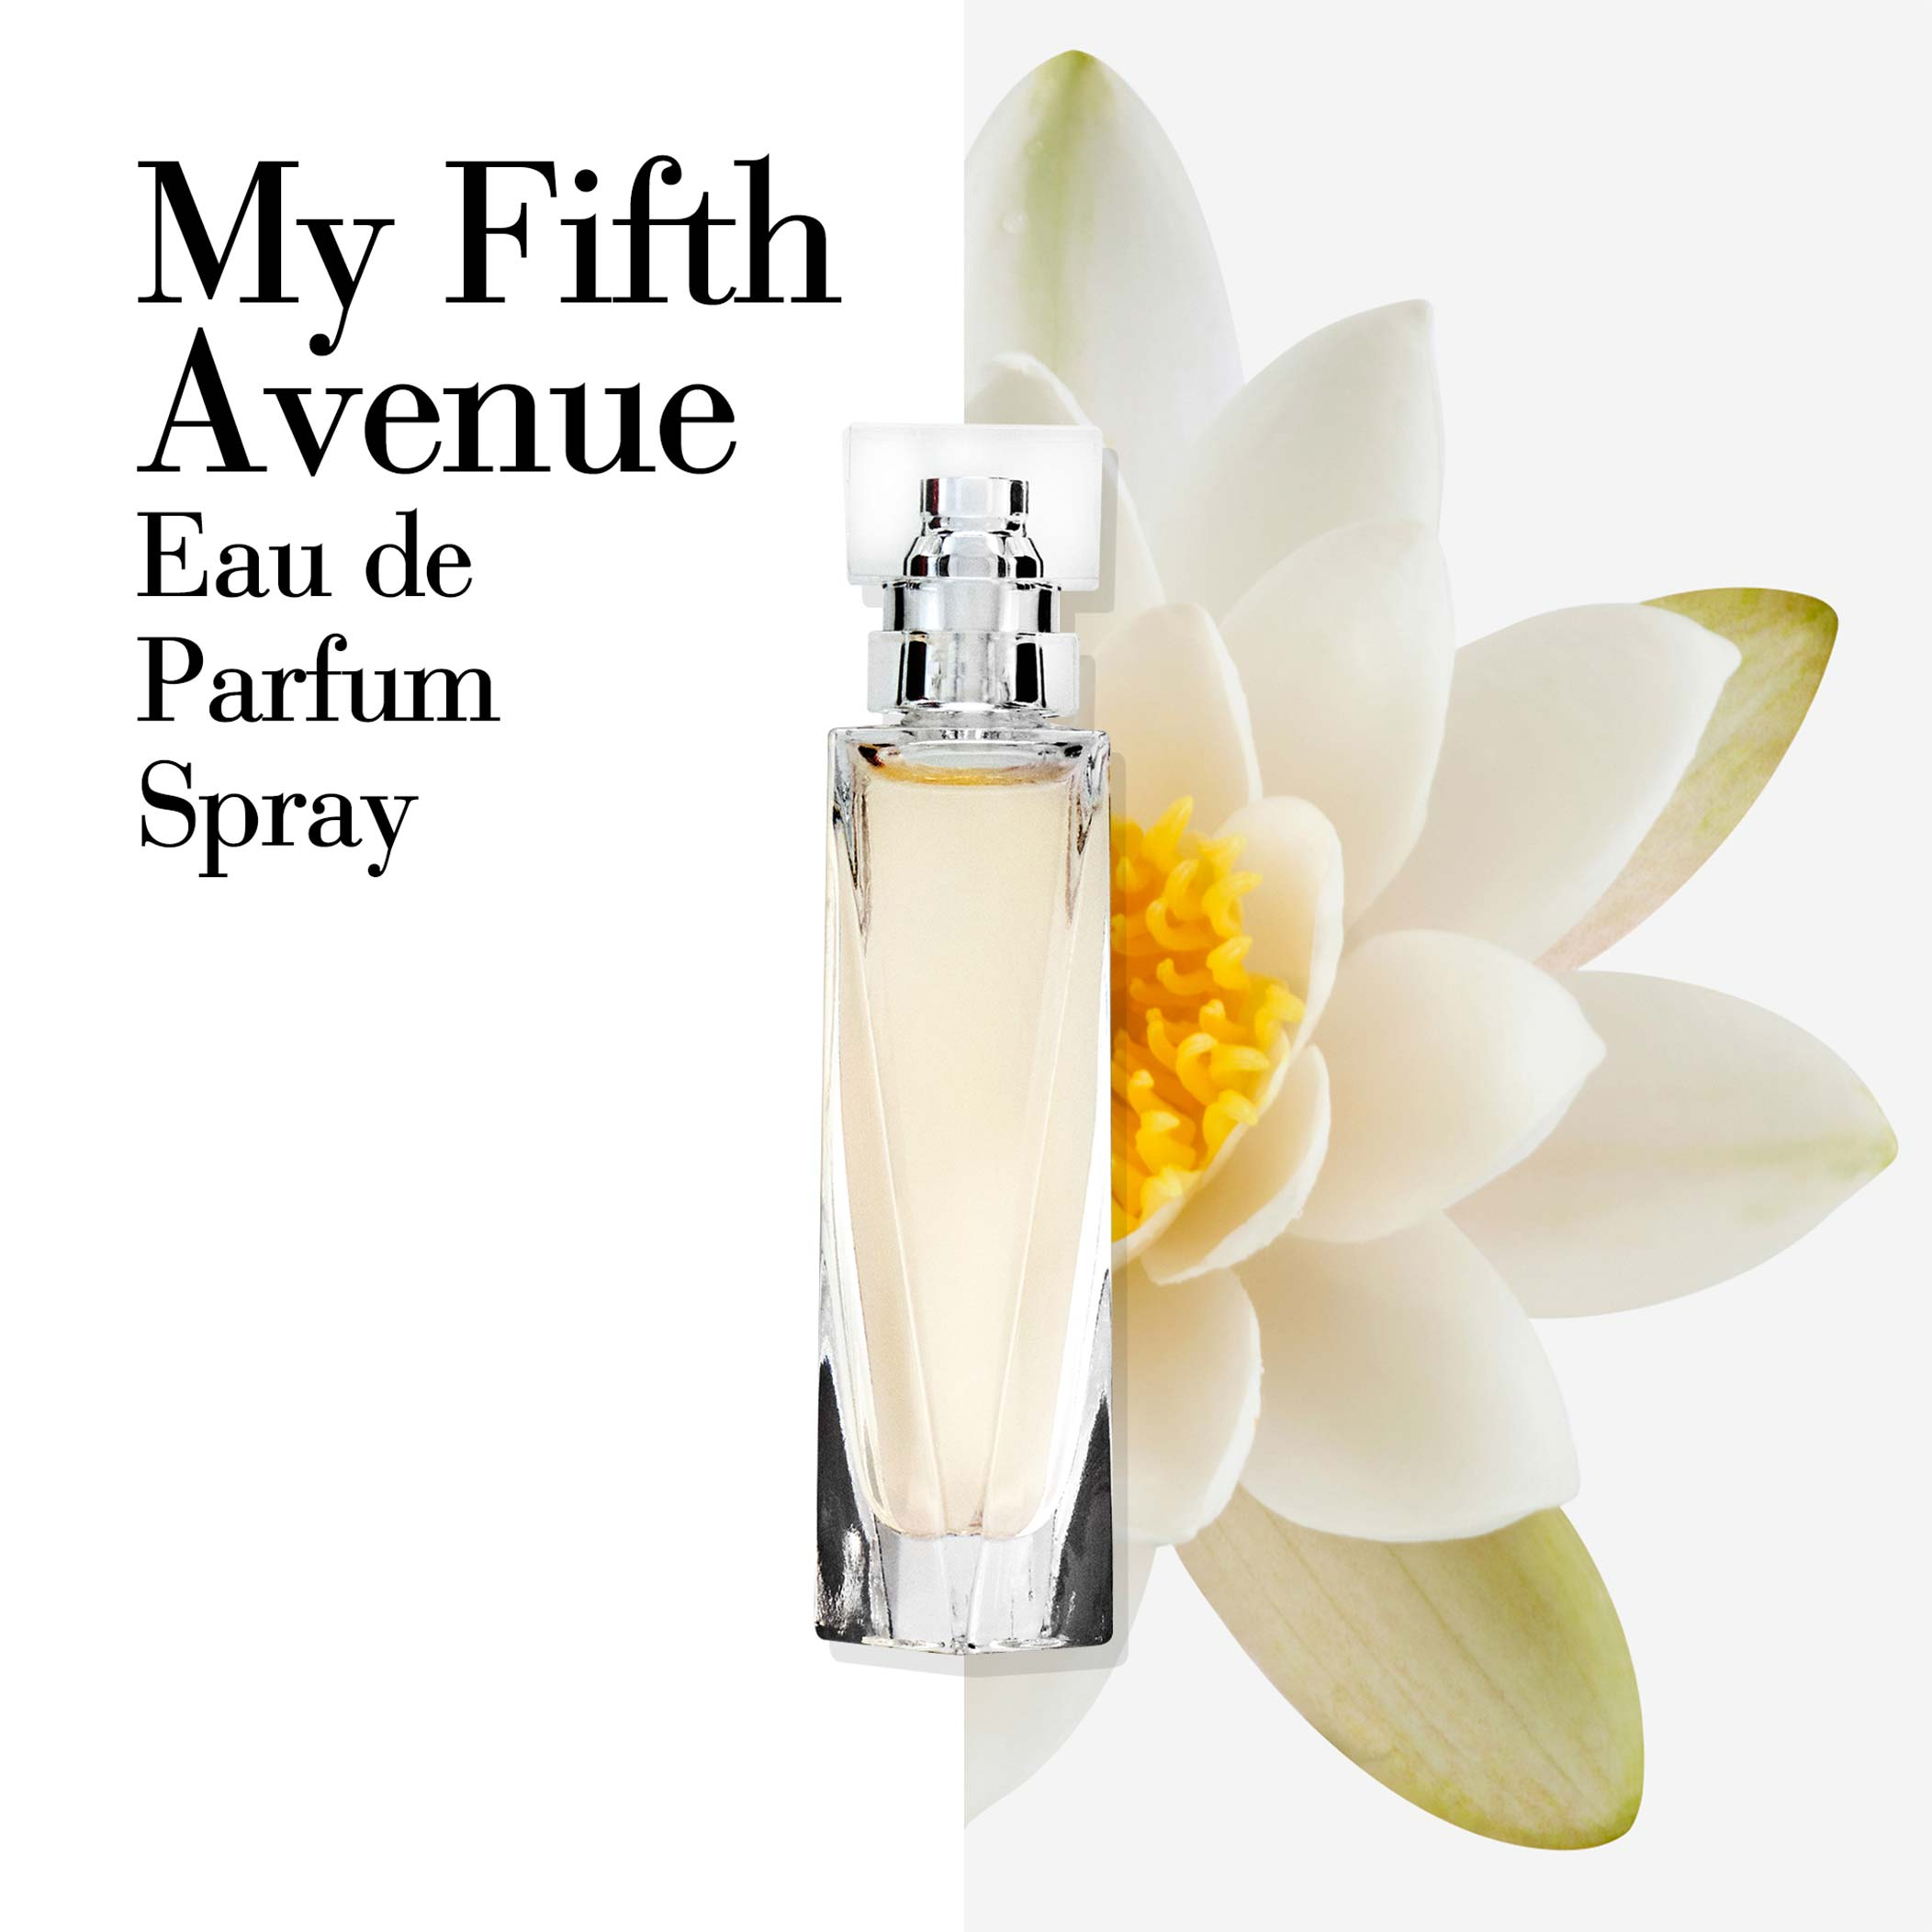 My 5th Avenue Eau De Parfum Spray